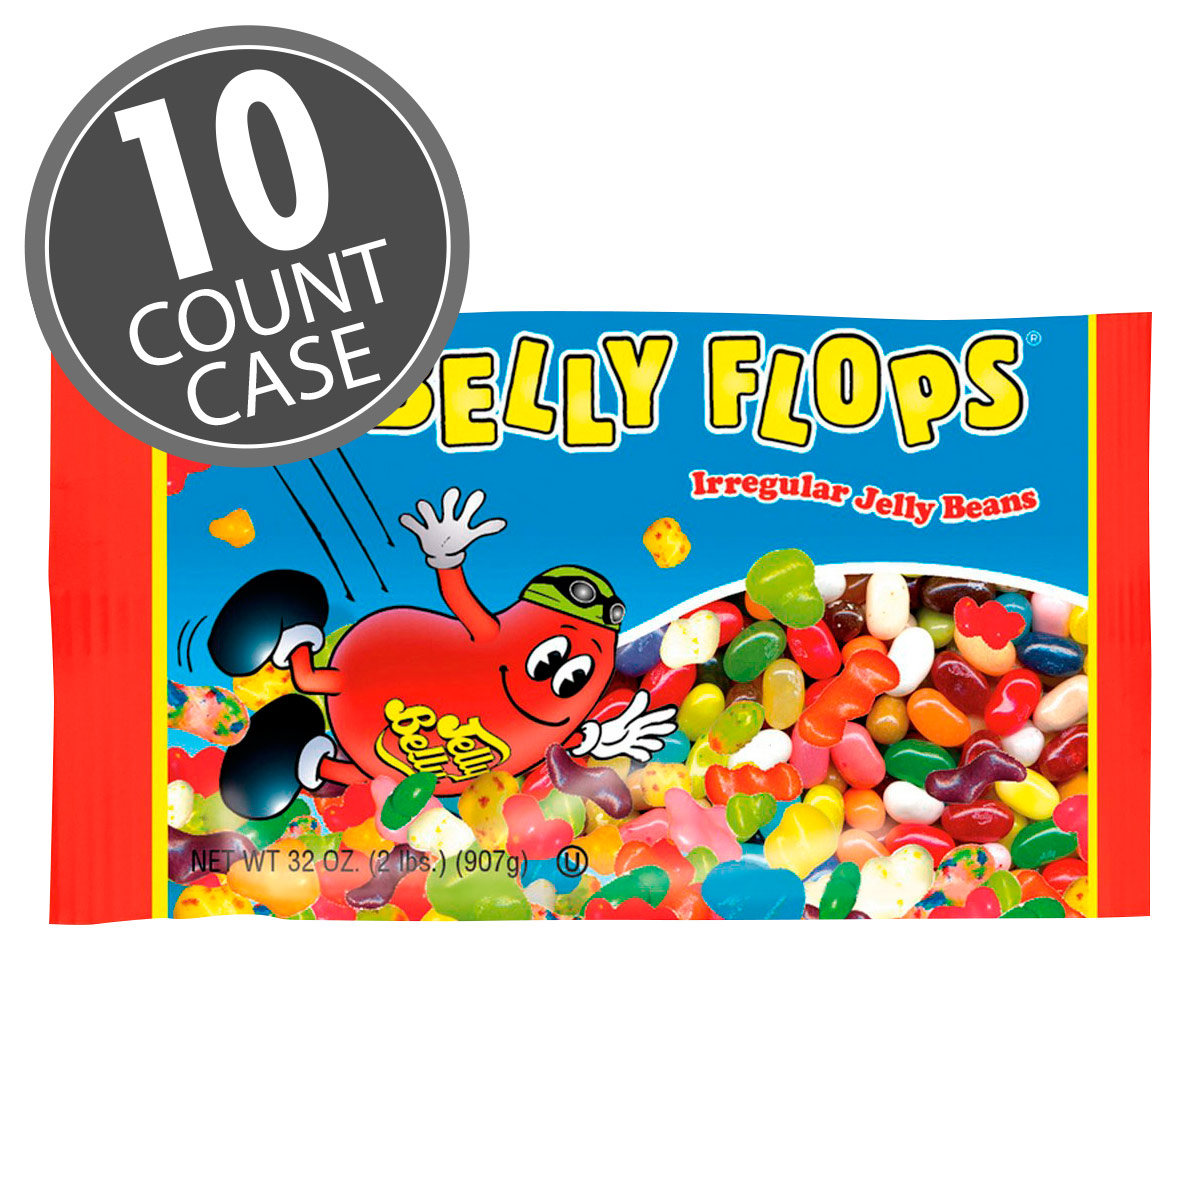 Belly Flops<sup>®</sup> Jelly Beans  - 2 lb. Bag - 10 Count Case